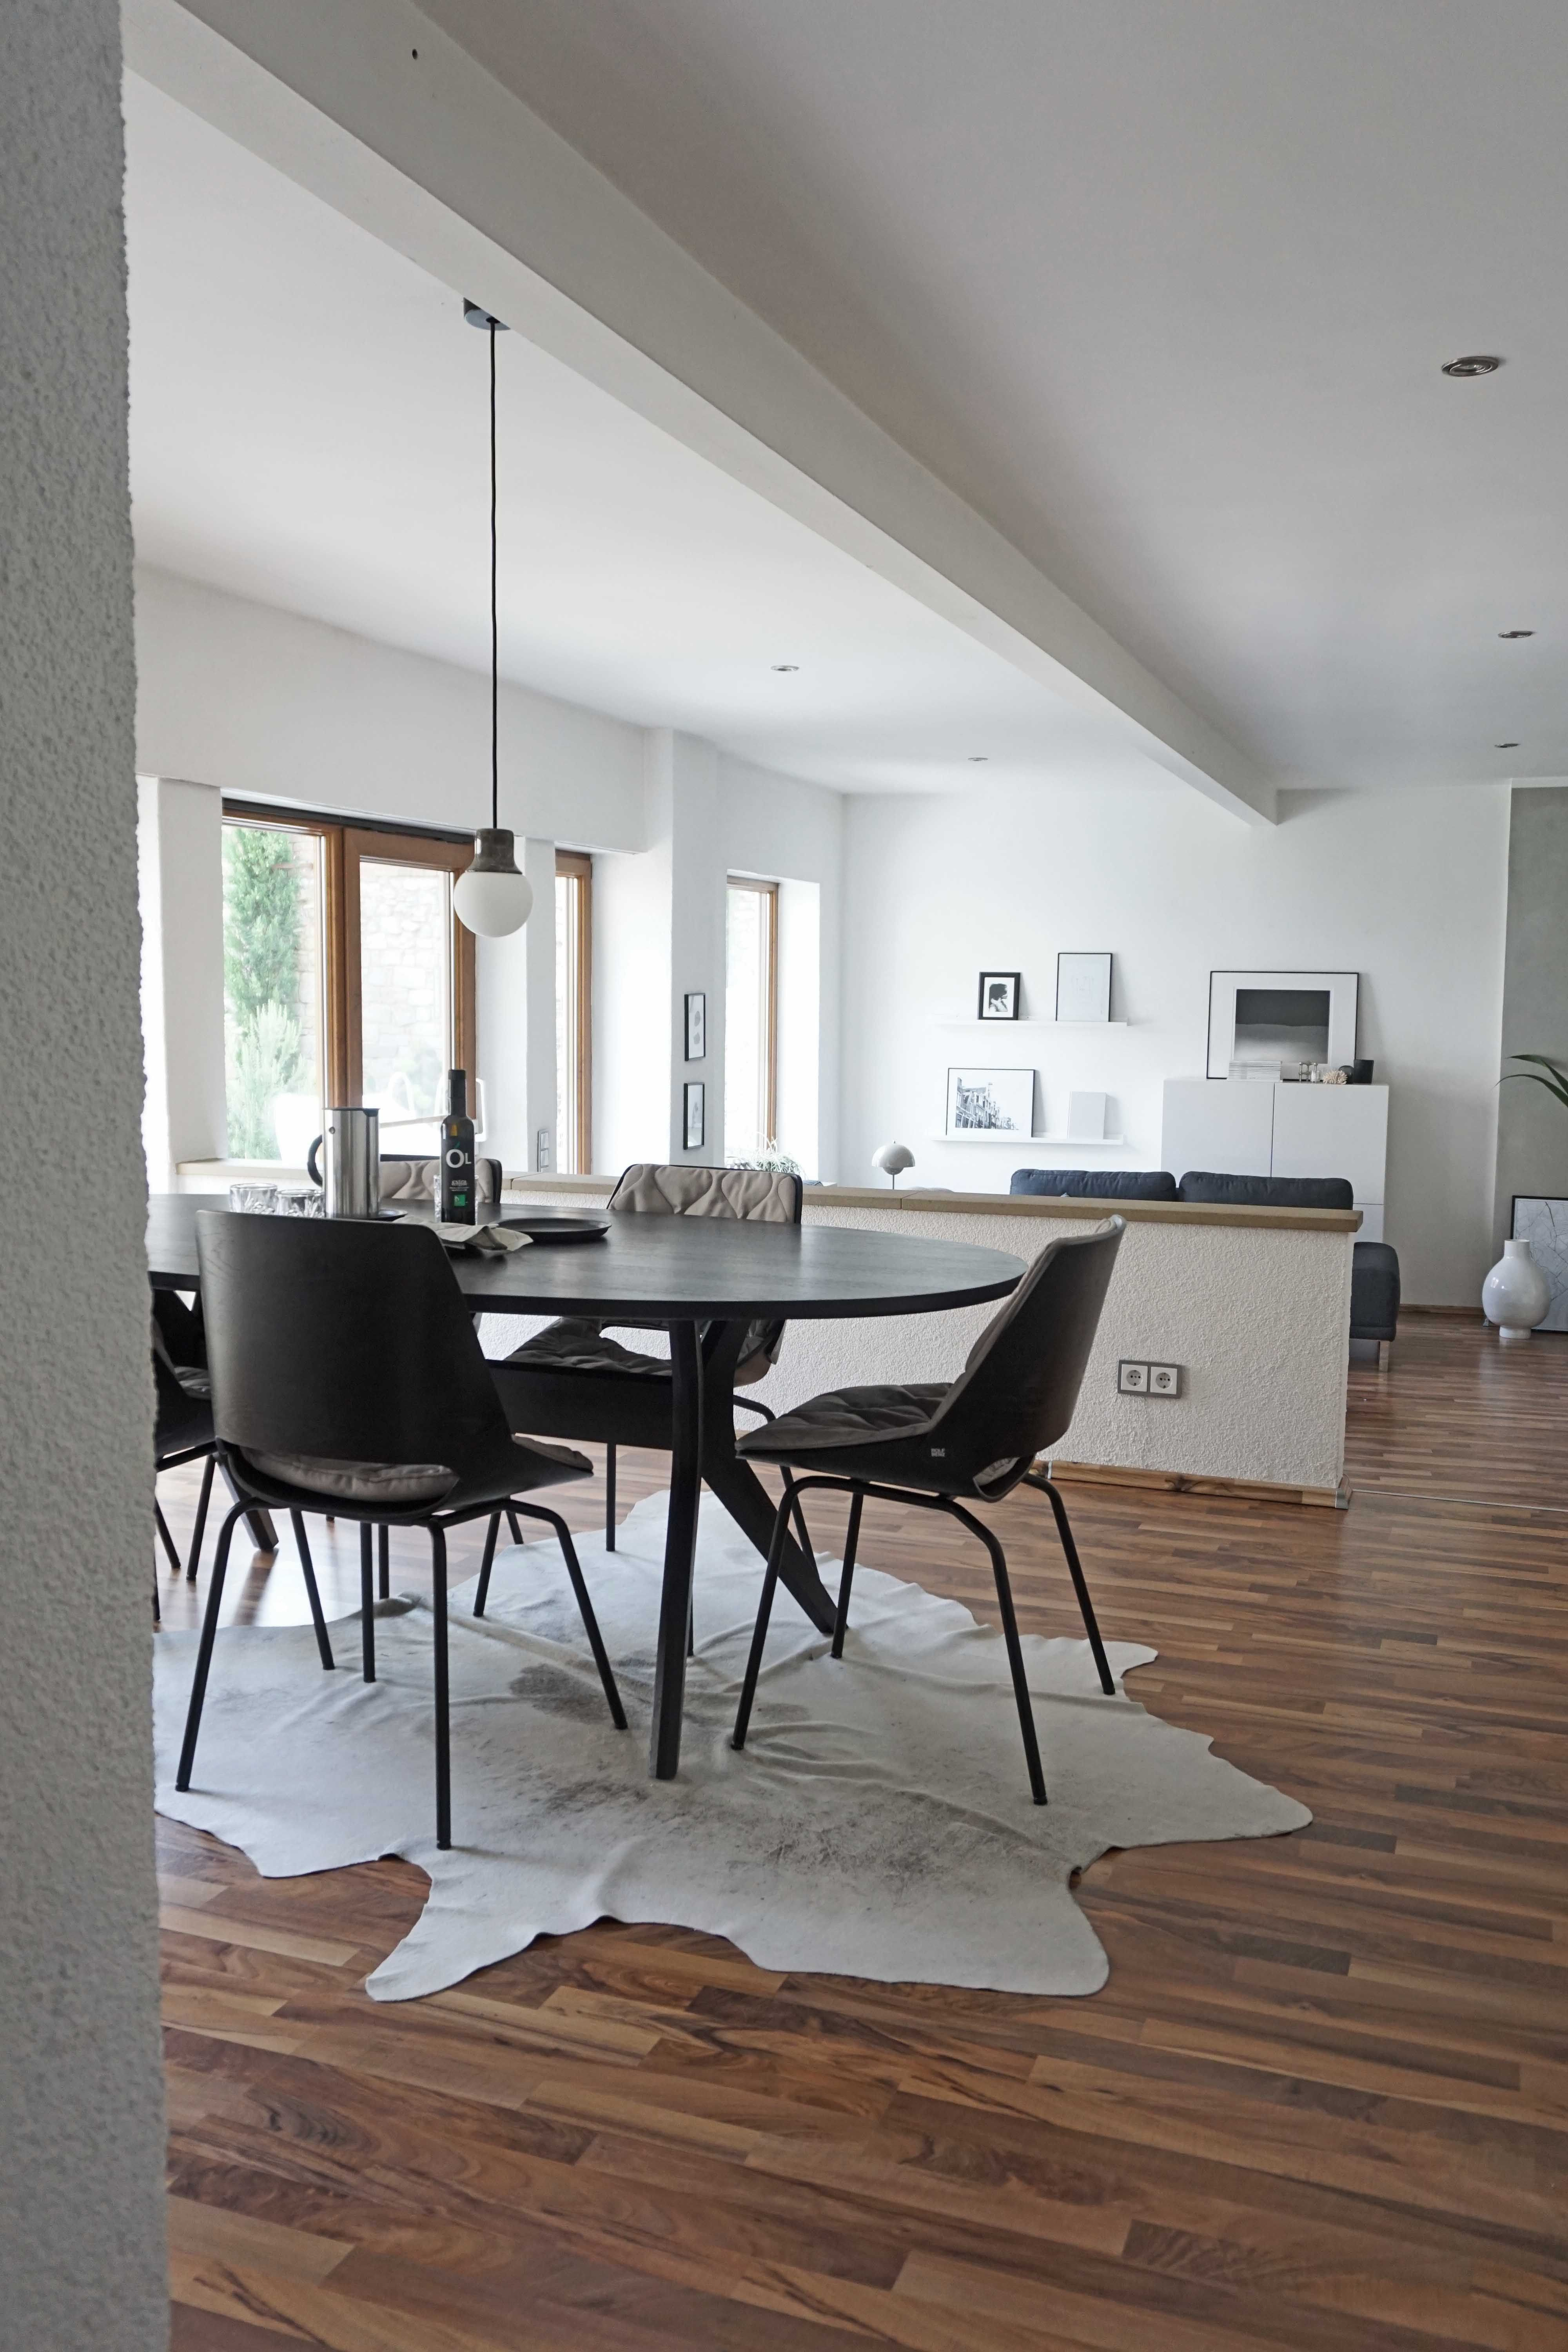 Esszimmer Rolf Benz The Ideal Dining Table Doesn T Have To Have 4 Corners Our Rolf